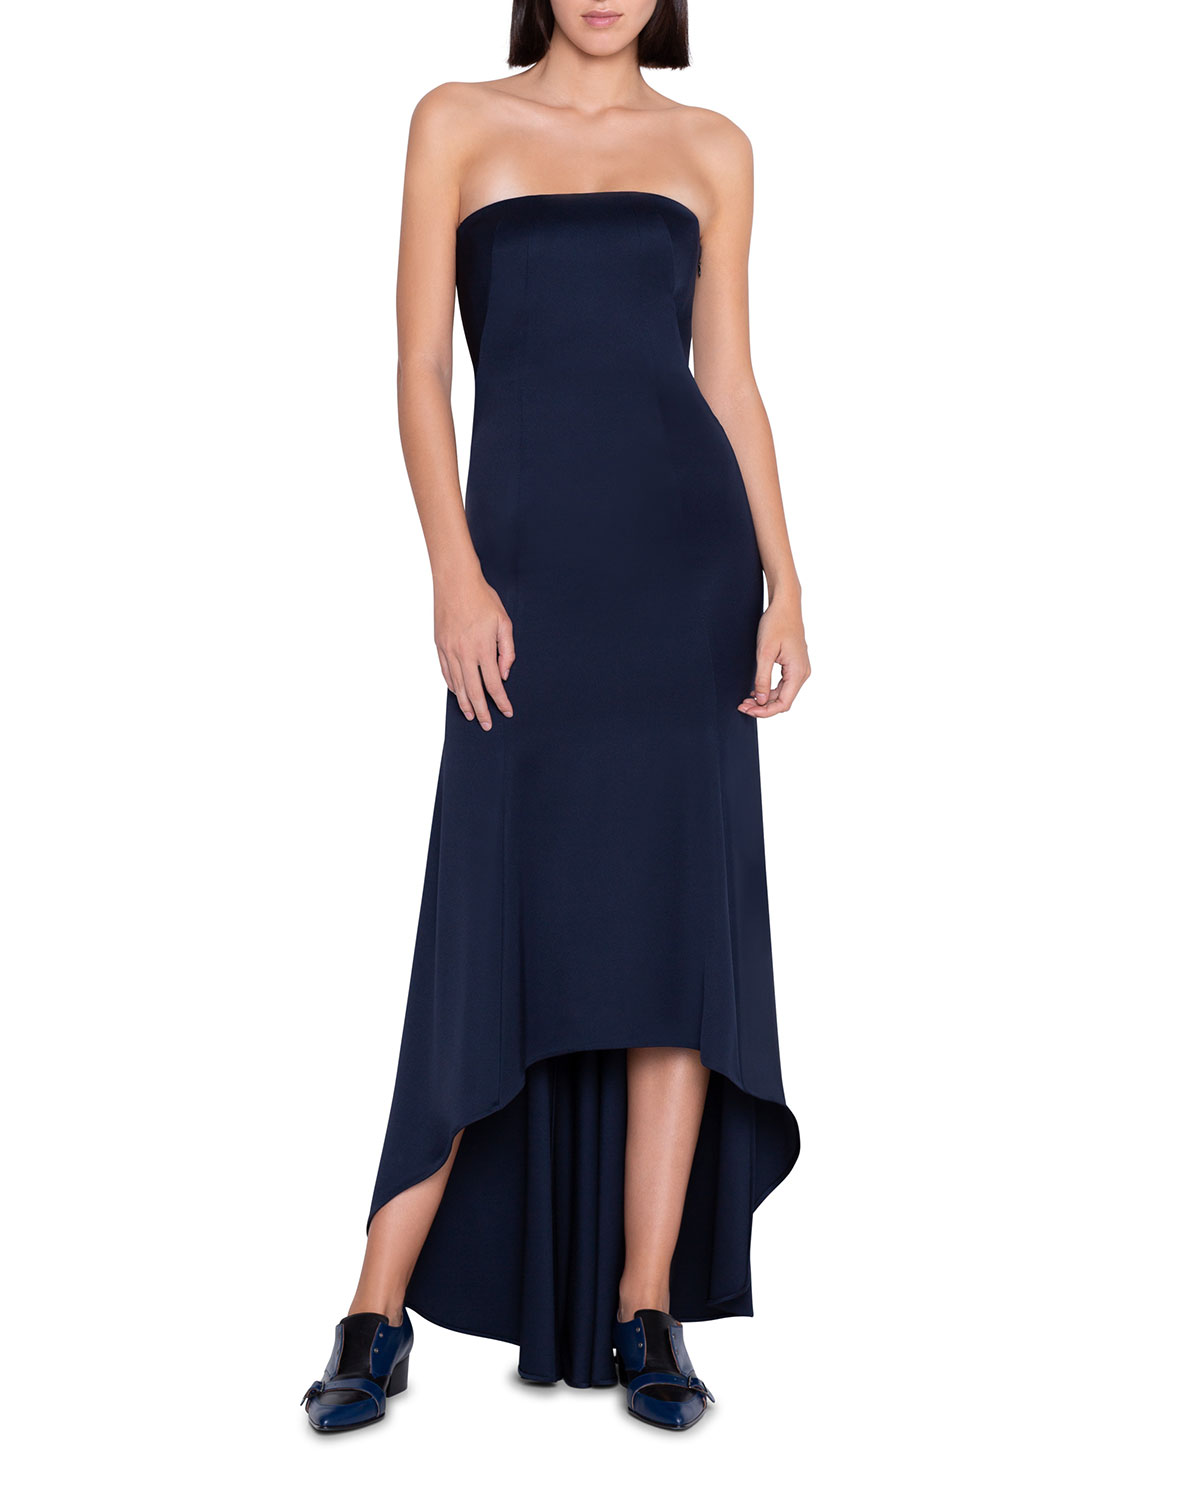 Stretch Silk Strapless High-Low Dress by Akris, available on neimanmarcus.com for $1 Priyanka Chopra Dress Exact Product